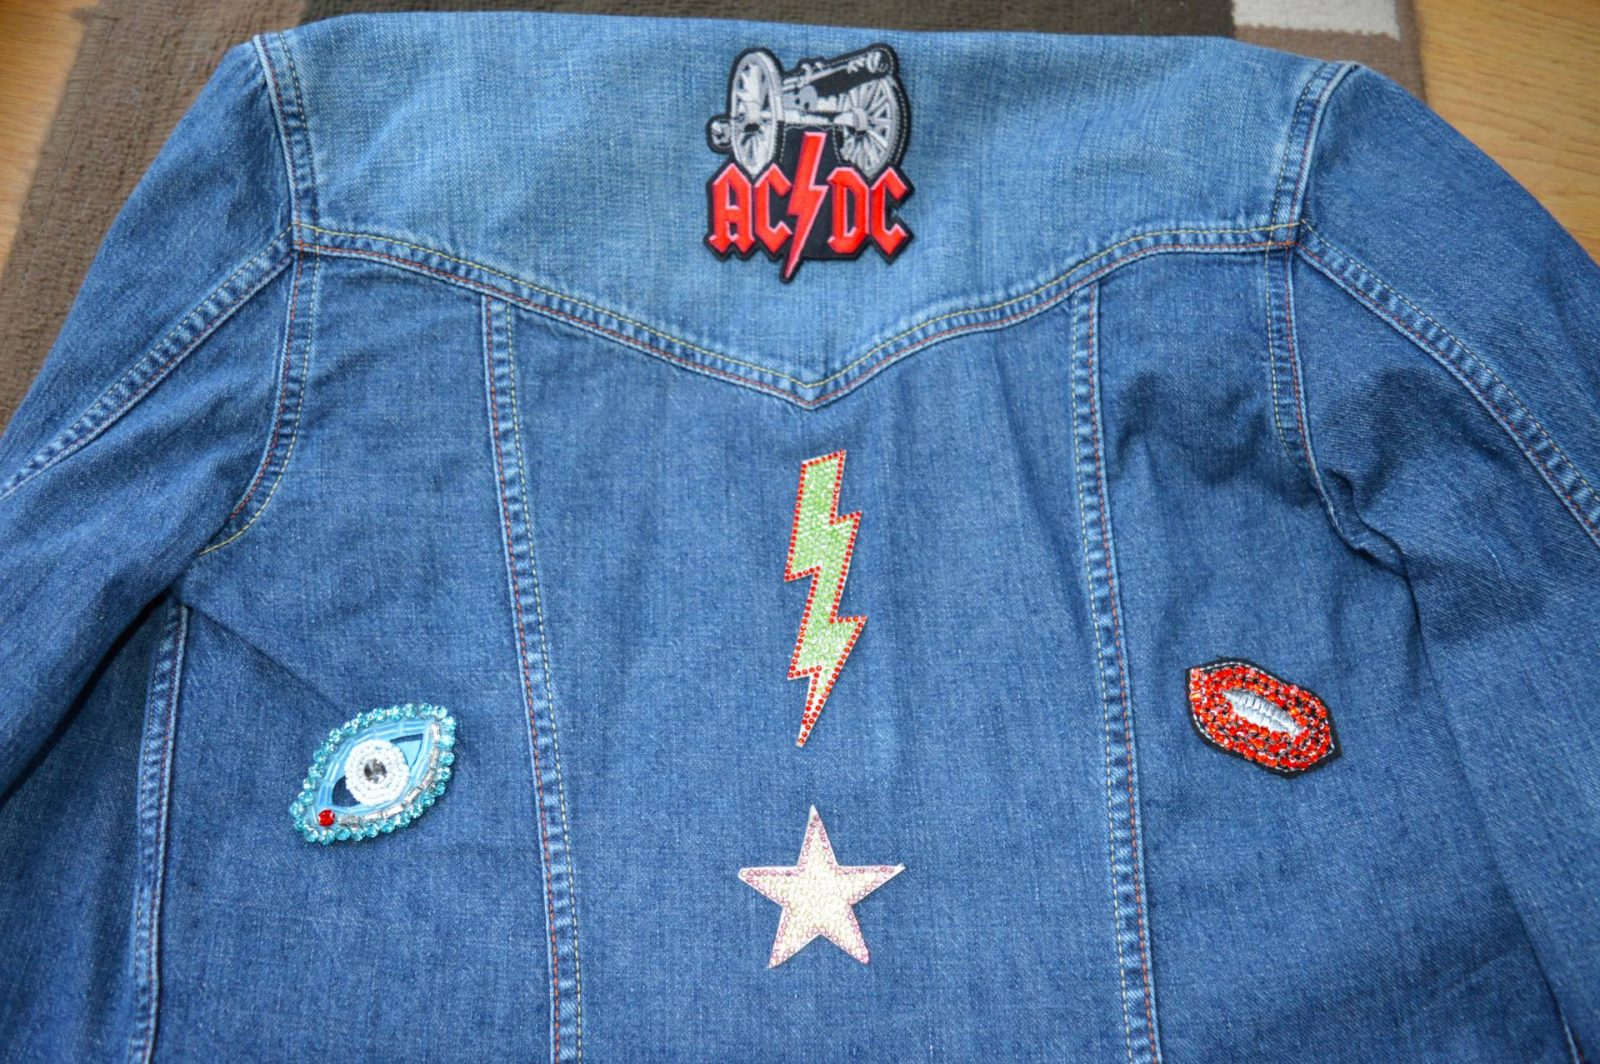 How to customise a denim jacket